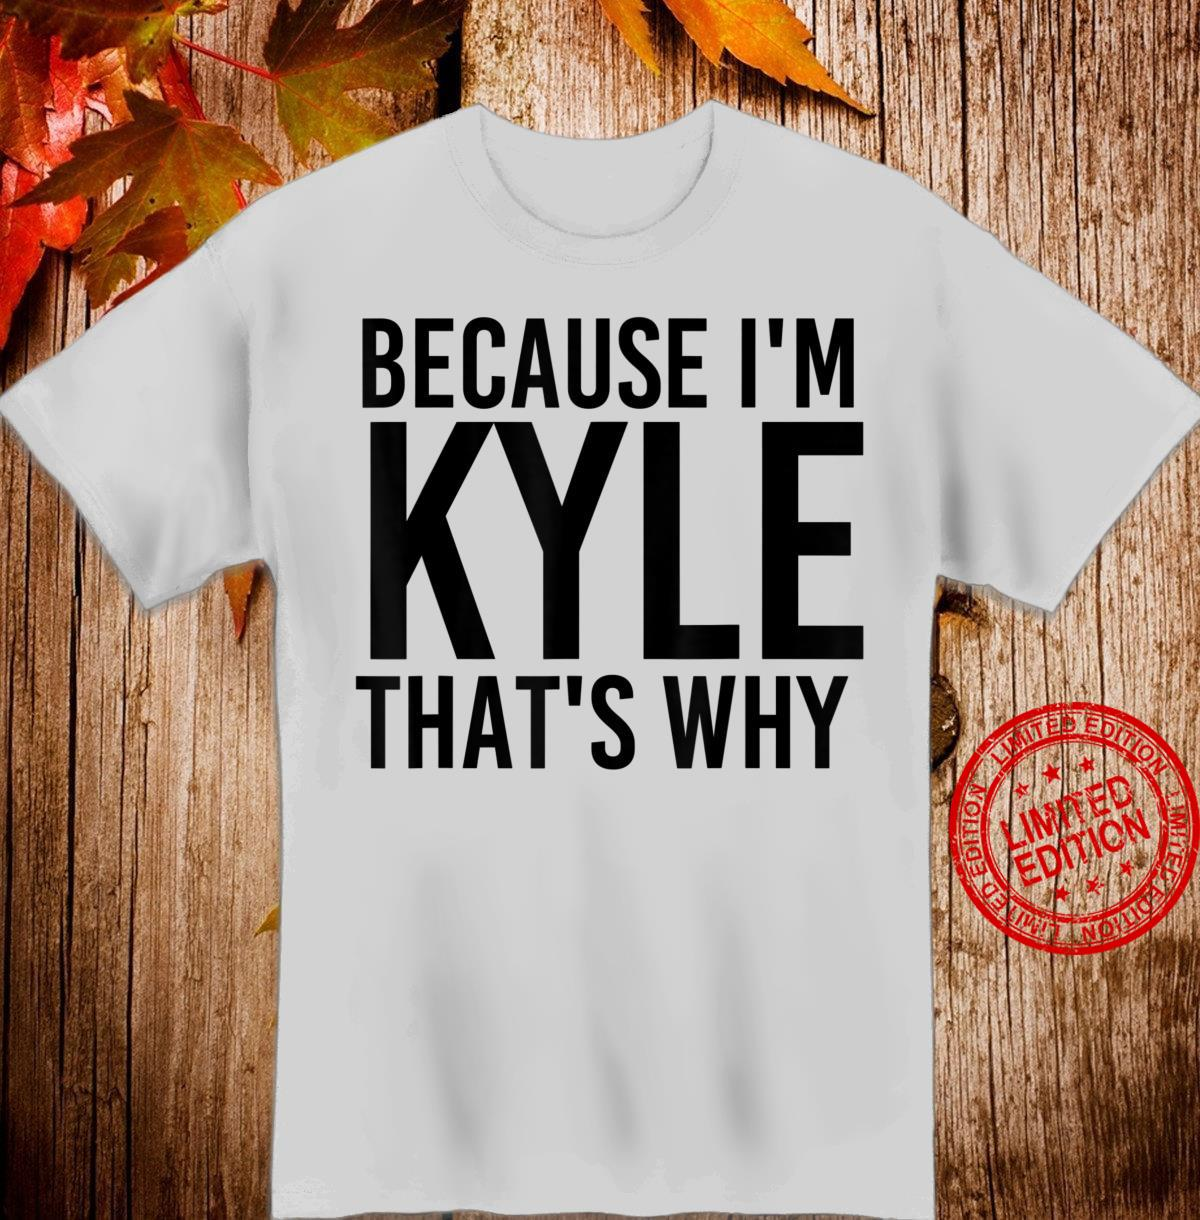 BECAUSE I'M KYLE THAT'S WHY Personalized Name Shirt